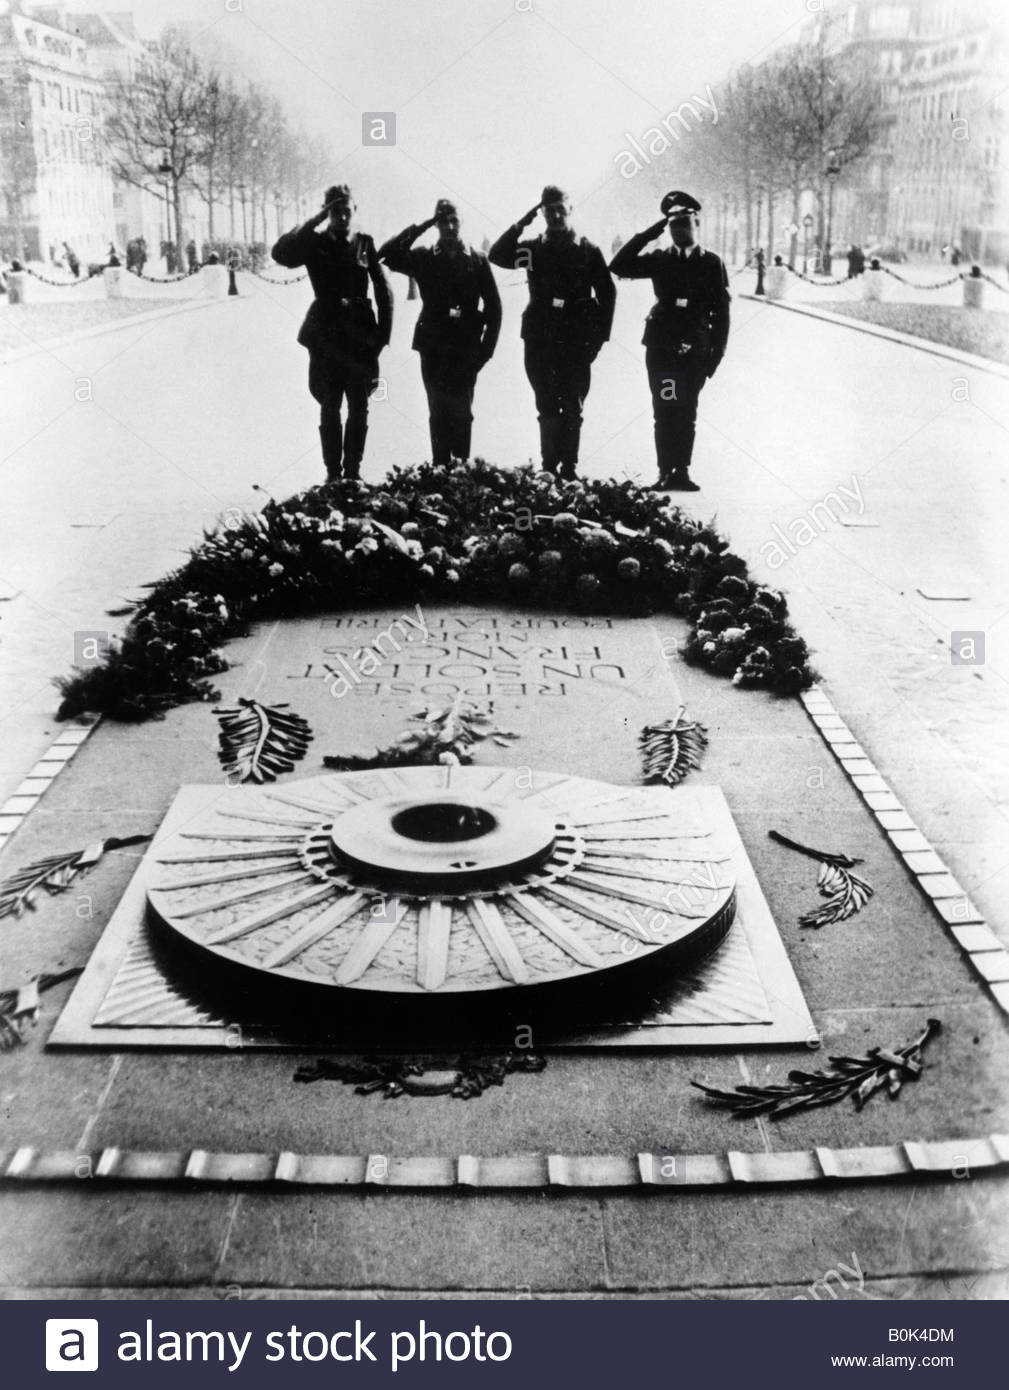 German soldiers saluting the Tomb of the Unknown Soldier, Paris, December 1940. - Stock Image